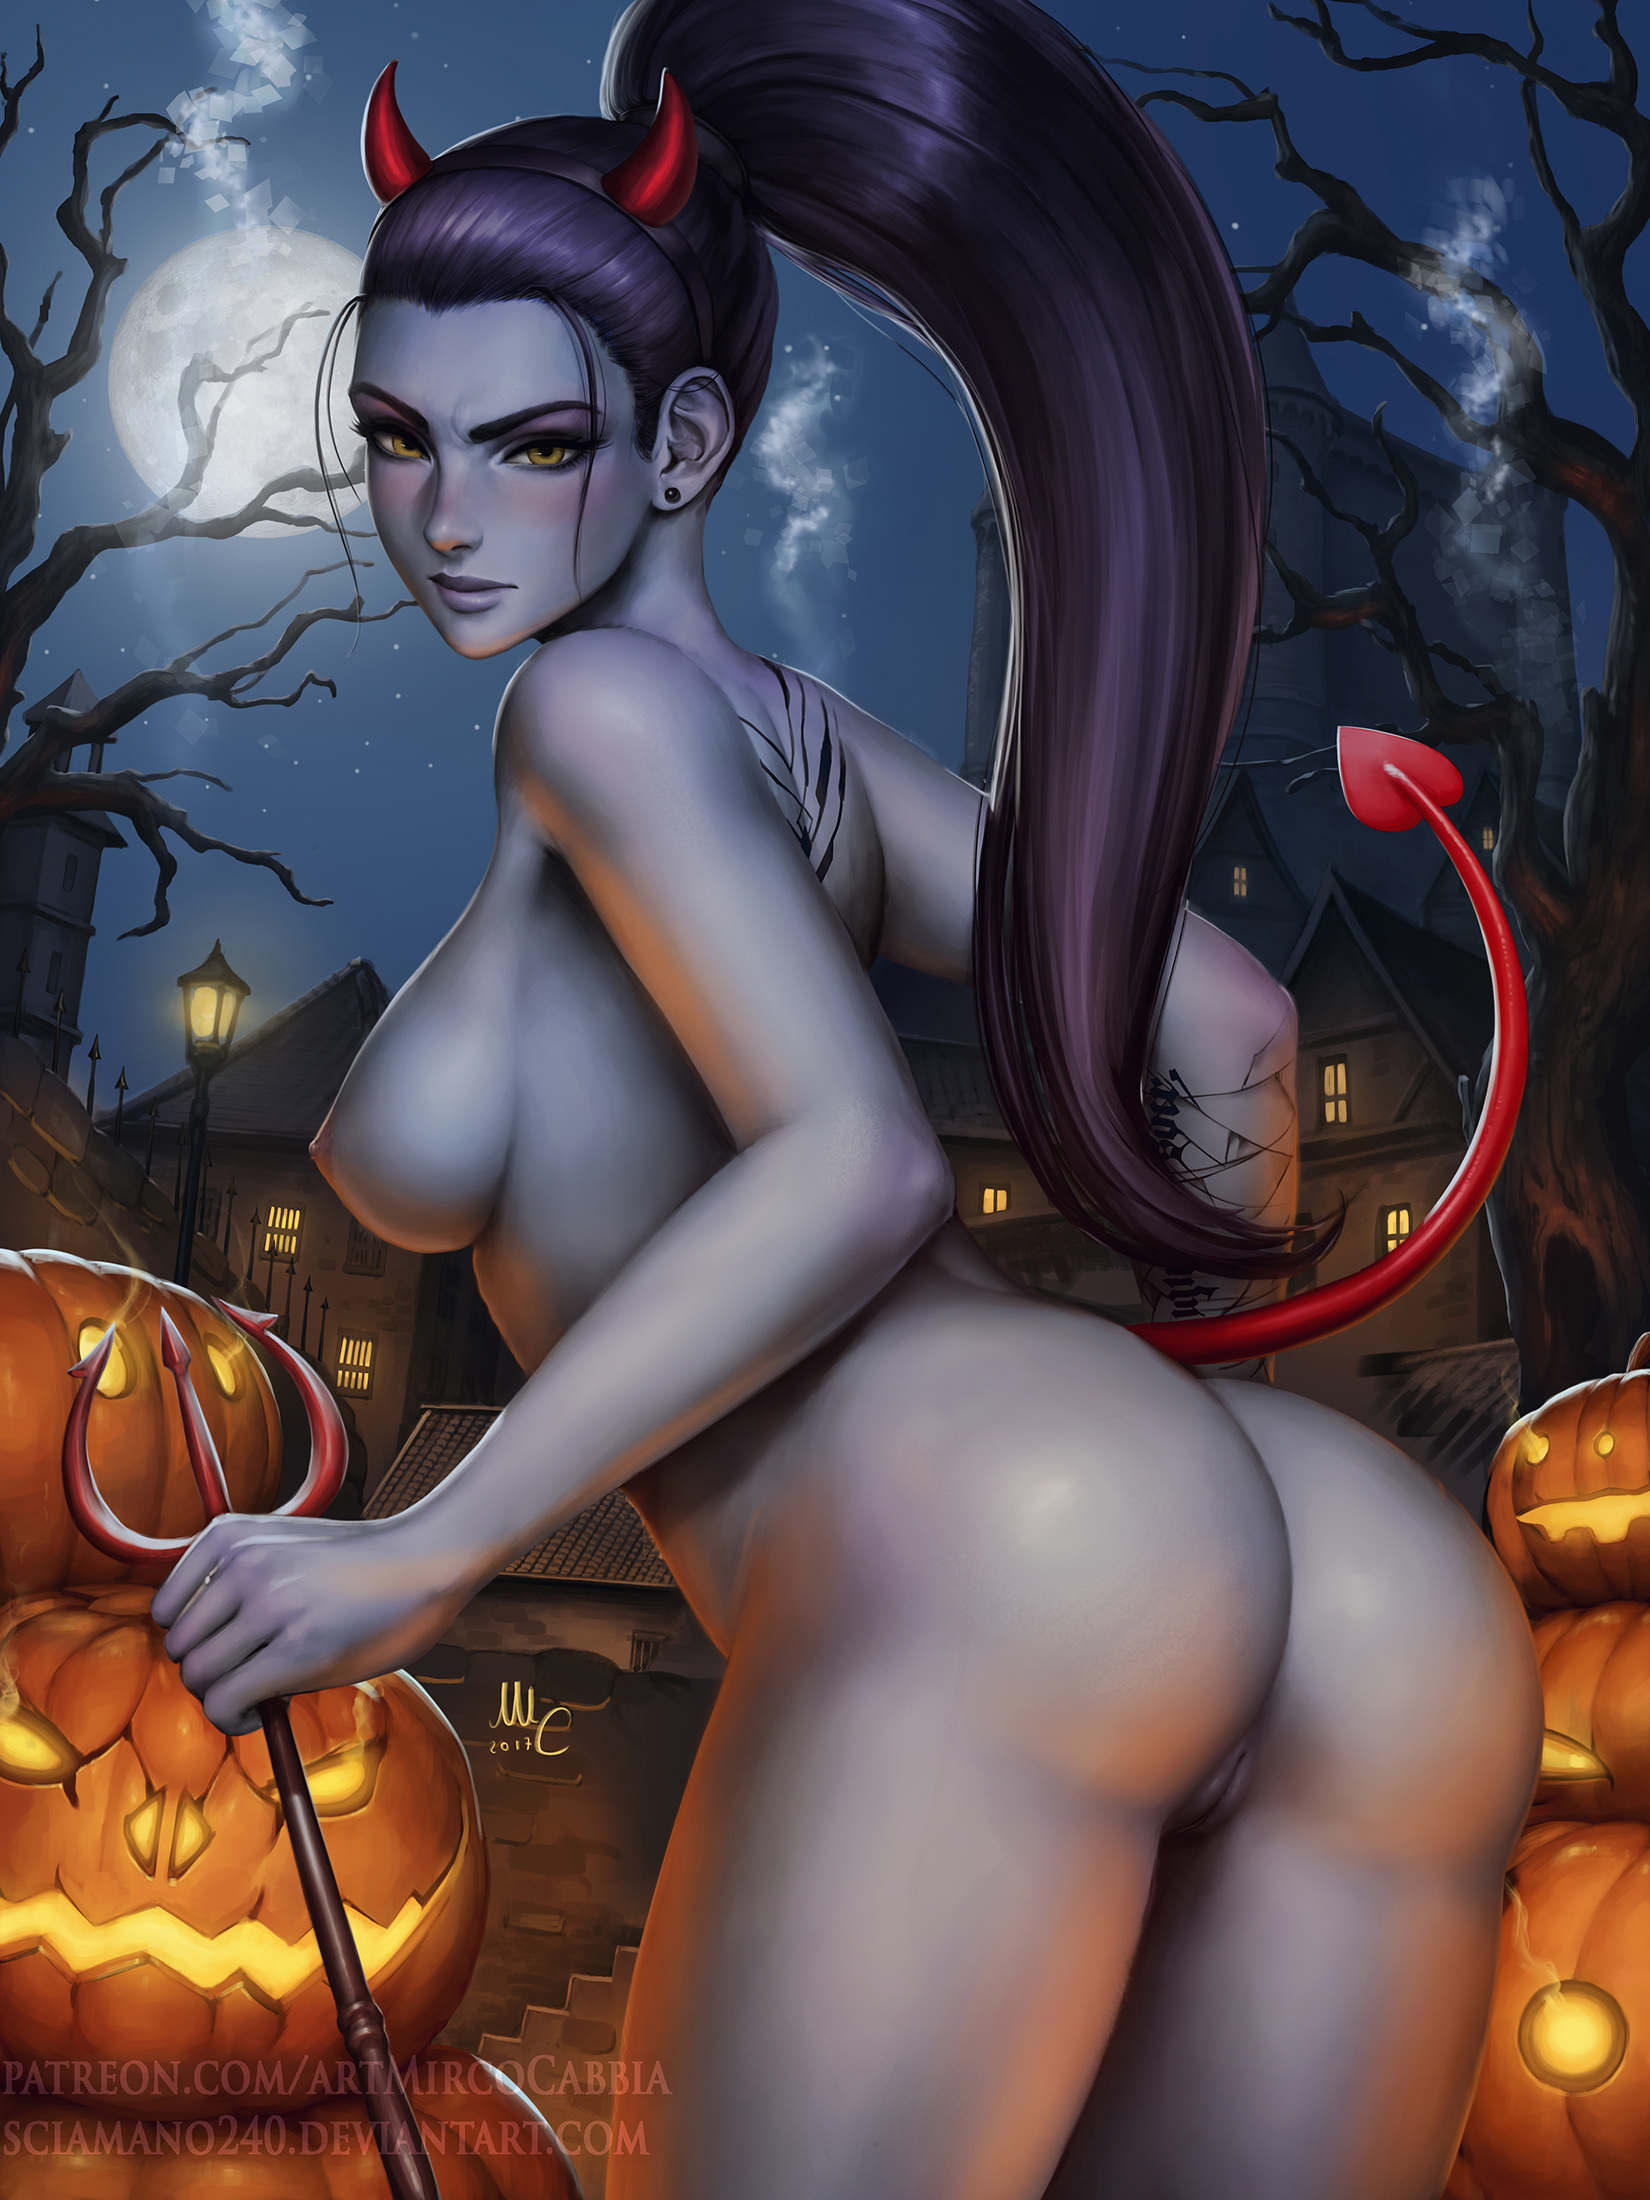 2388552 - Halloween Overlook Sciamano240 Widowmaker